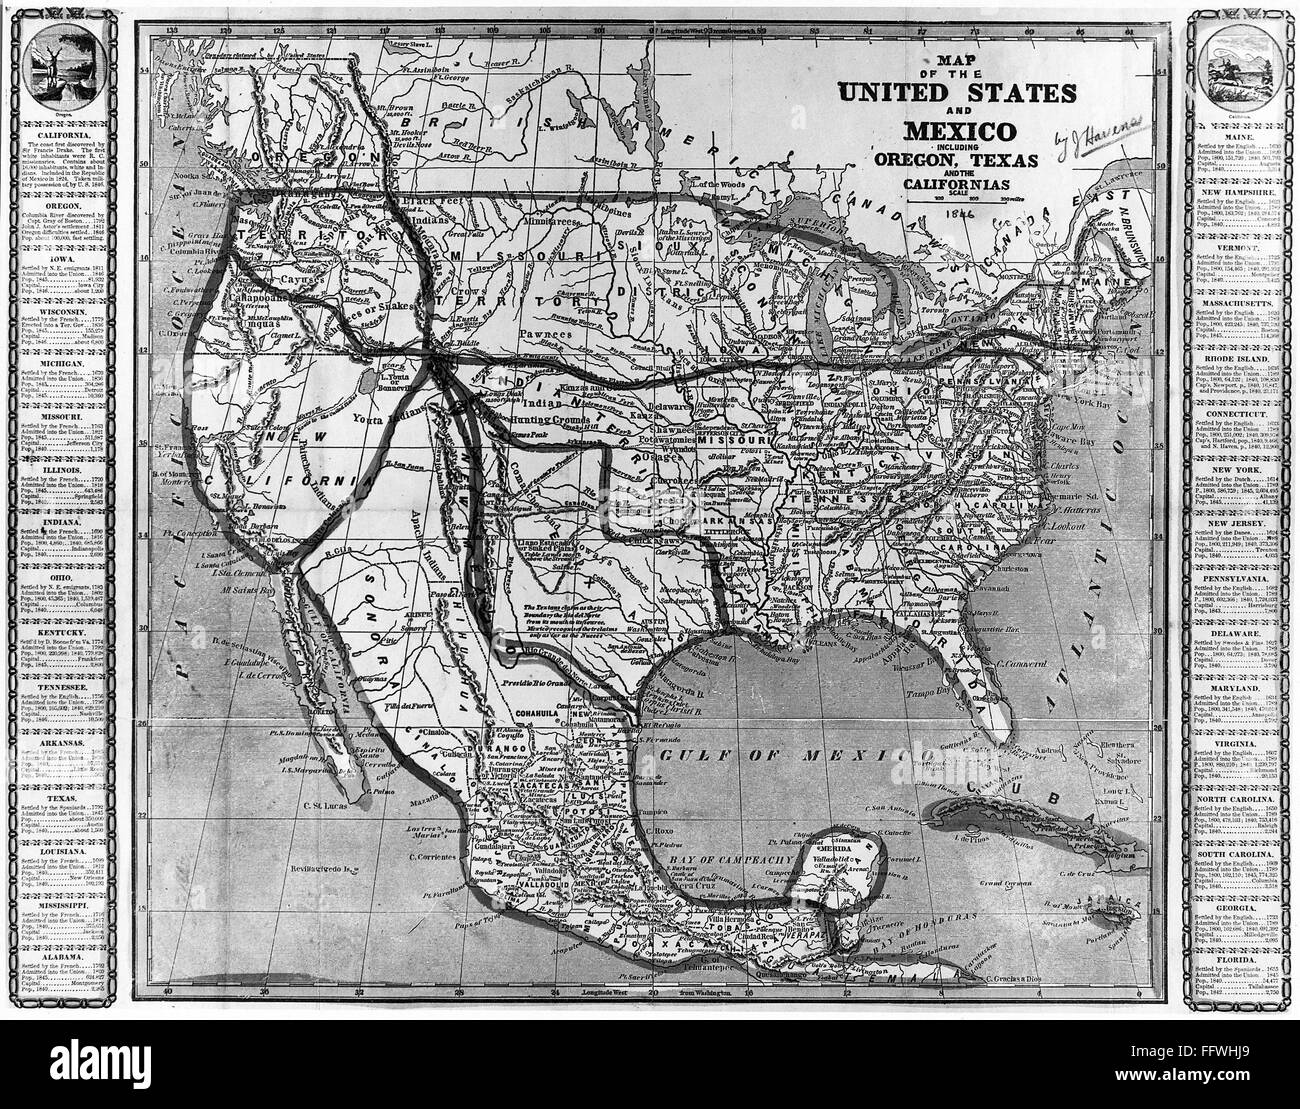 Namerican Map Of The United States And Mexico Including Oregon Texas And The Californias 1846 Before The Mexican War